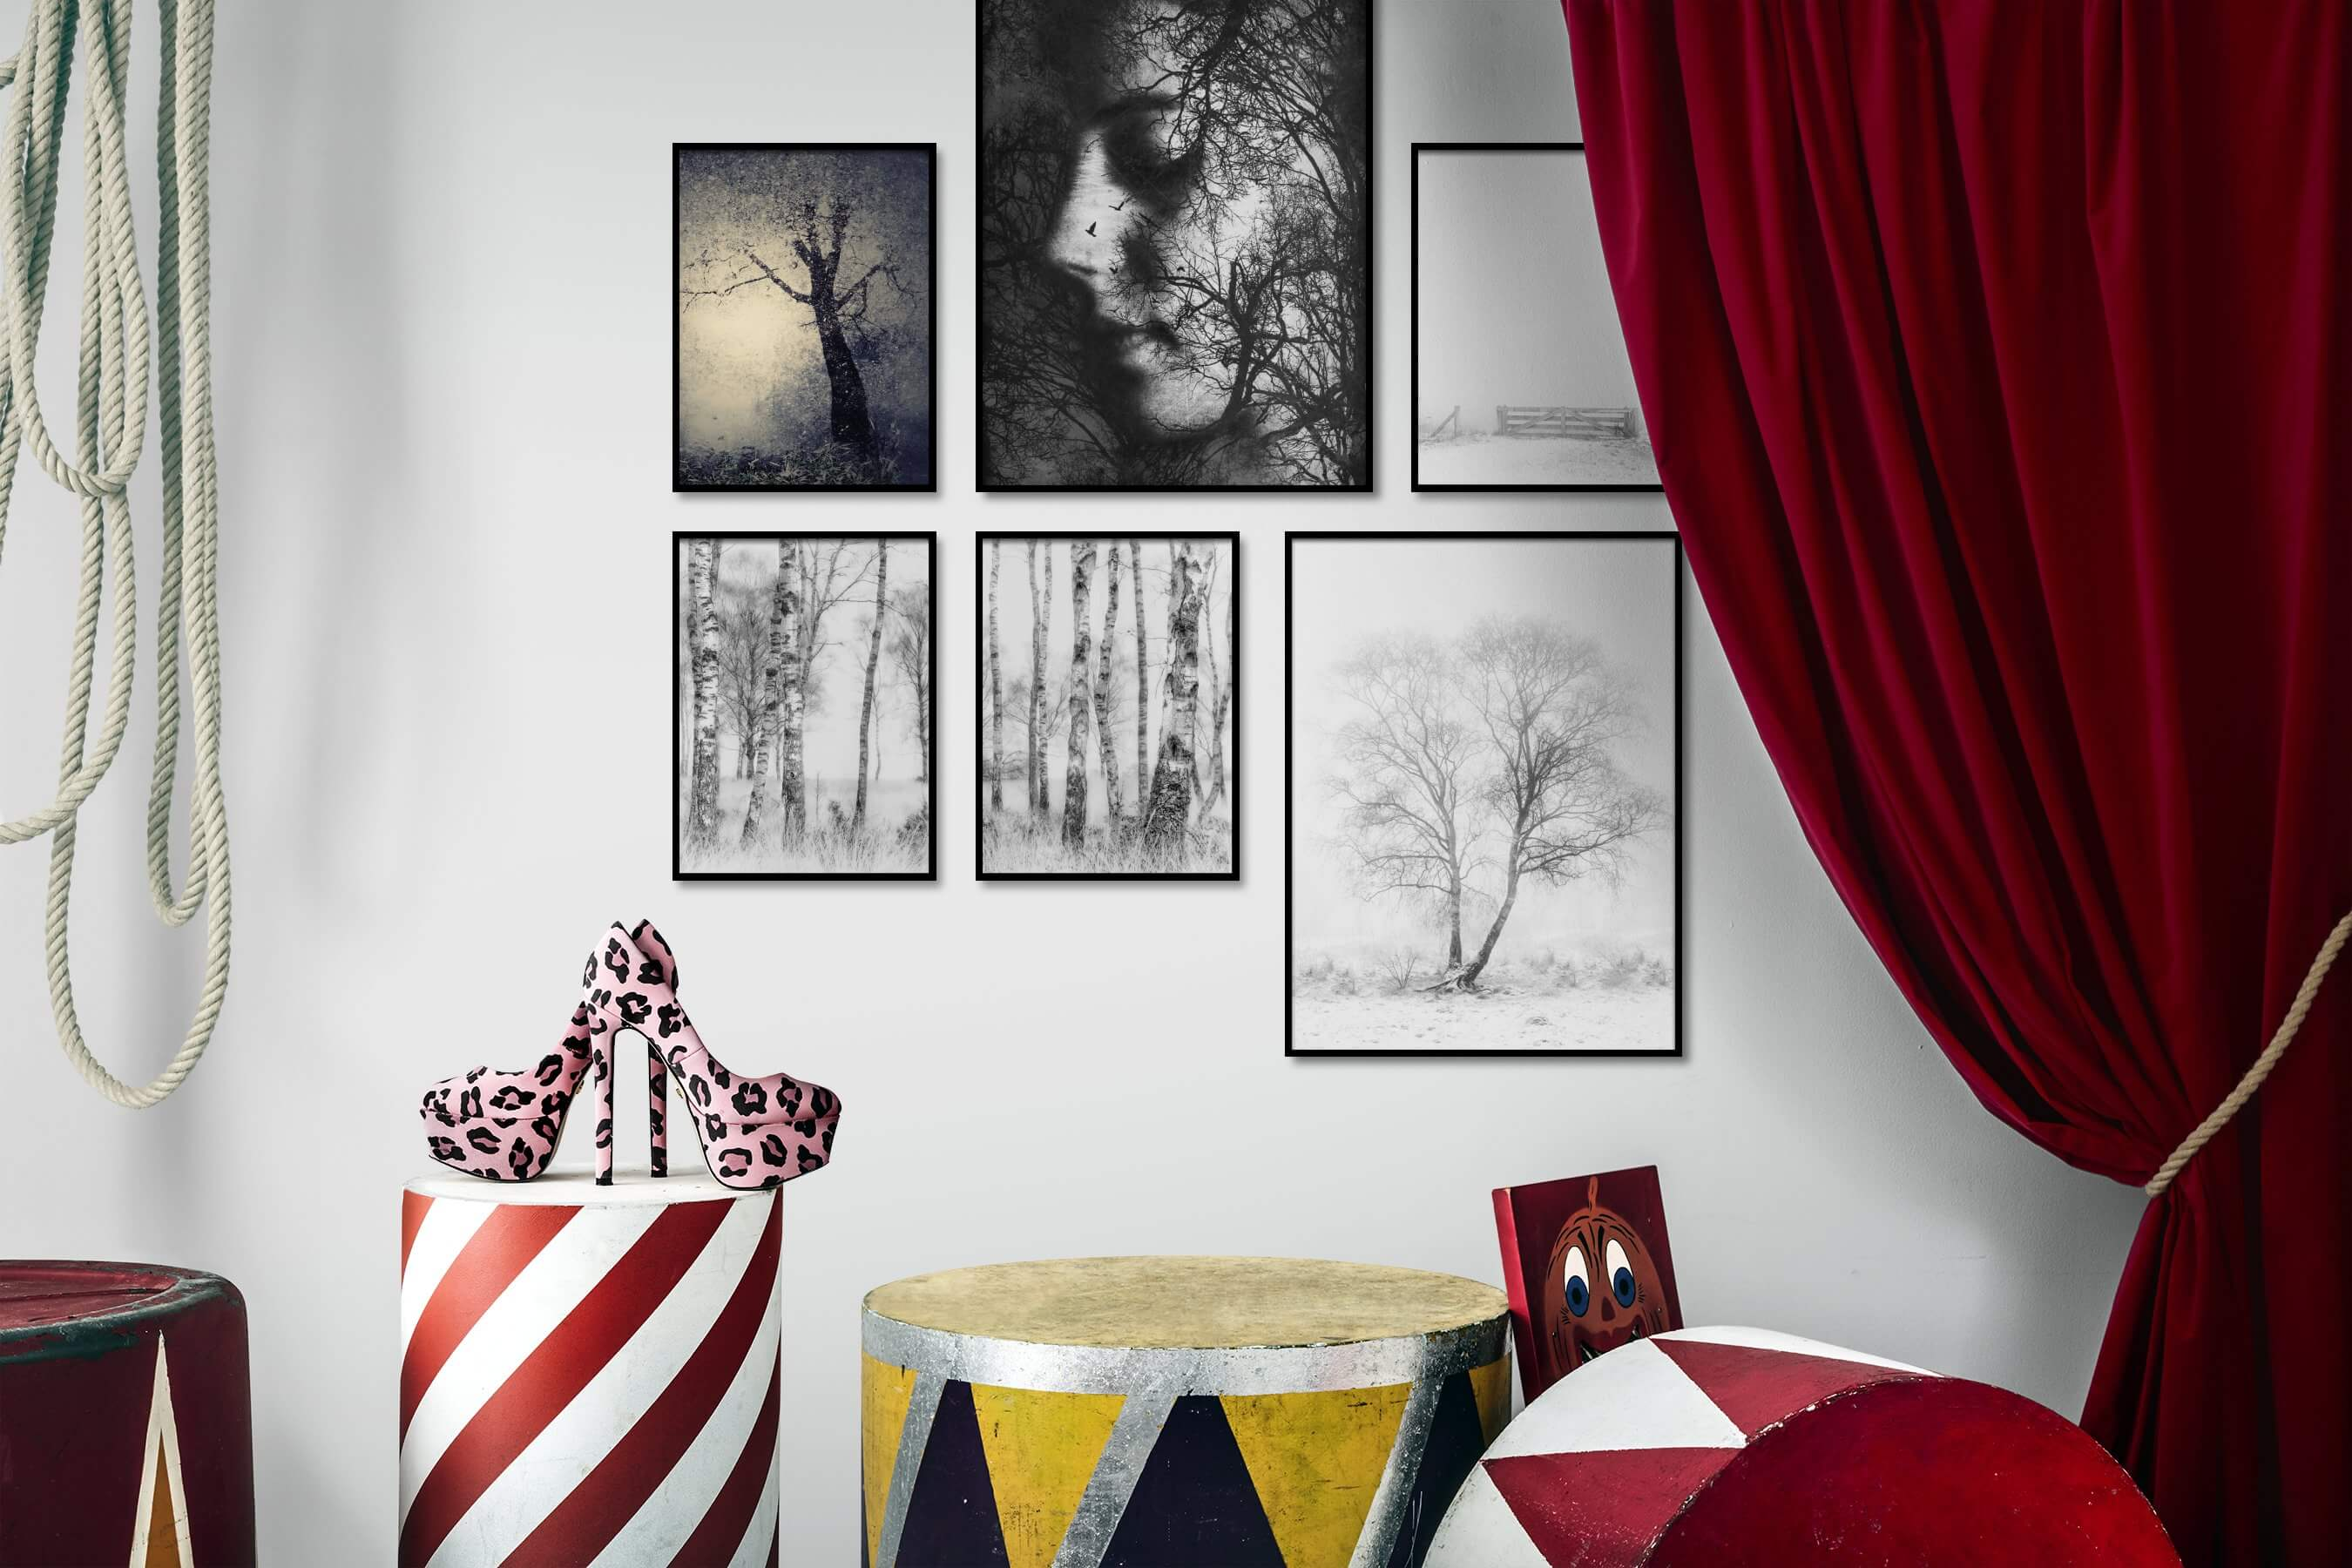 Gallery wall idea with six framed pictures arranged on a wall depicting Nature, Artsy, Black & White, Bright Tones, For the Minimalist, and Country Life